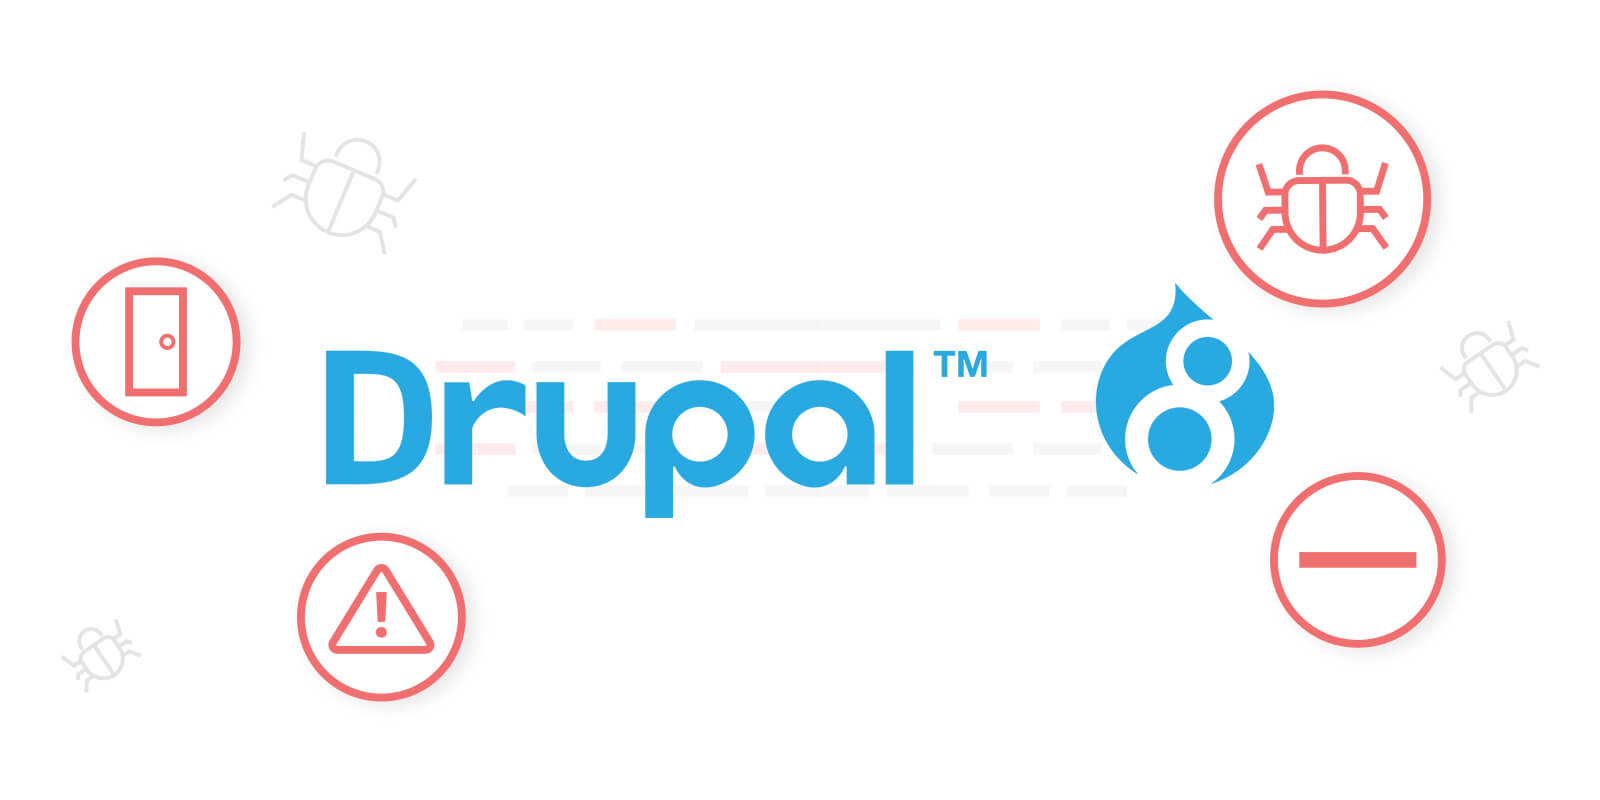 Drupal Website Security: How to Secure & Protect Drupal Sites